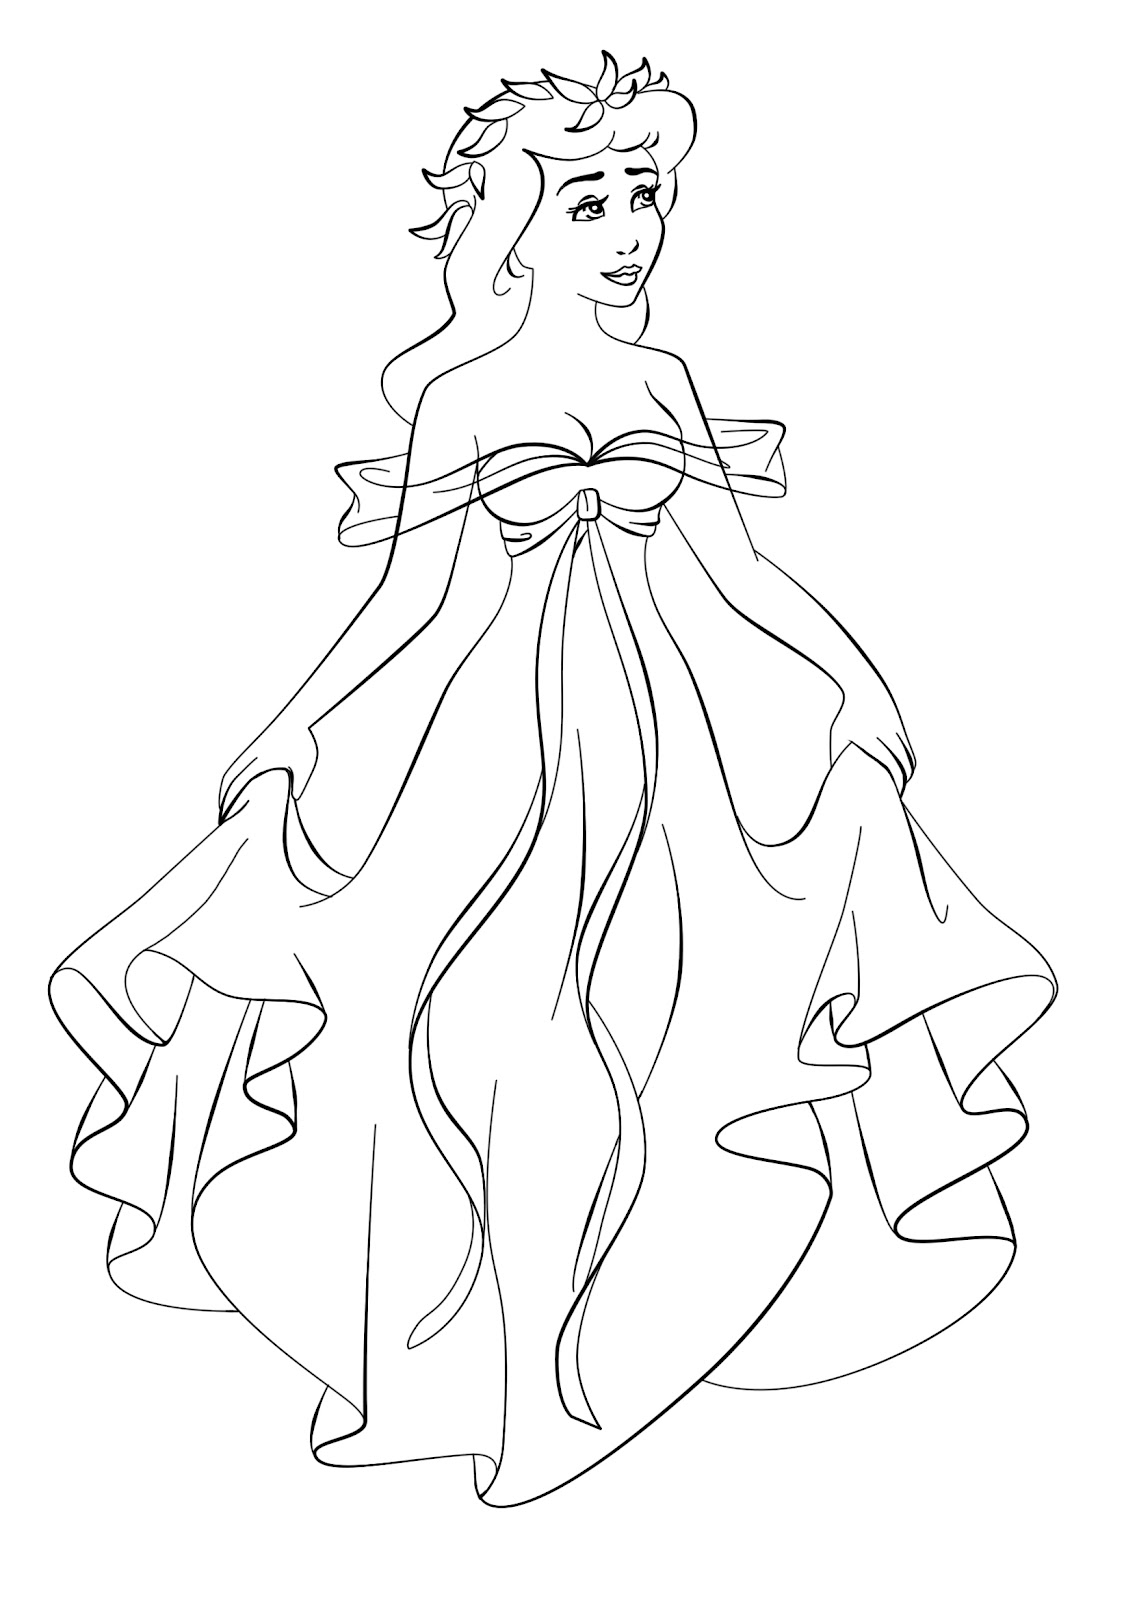 giselle coloring pages - paola tosca art disney crossover linearts